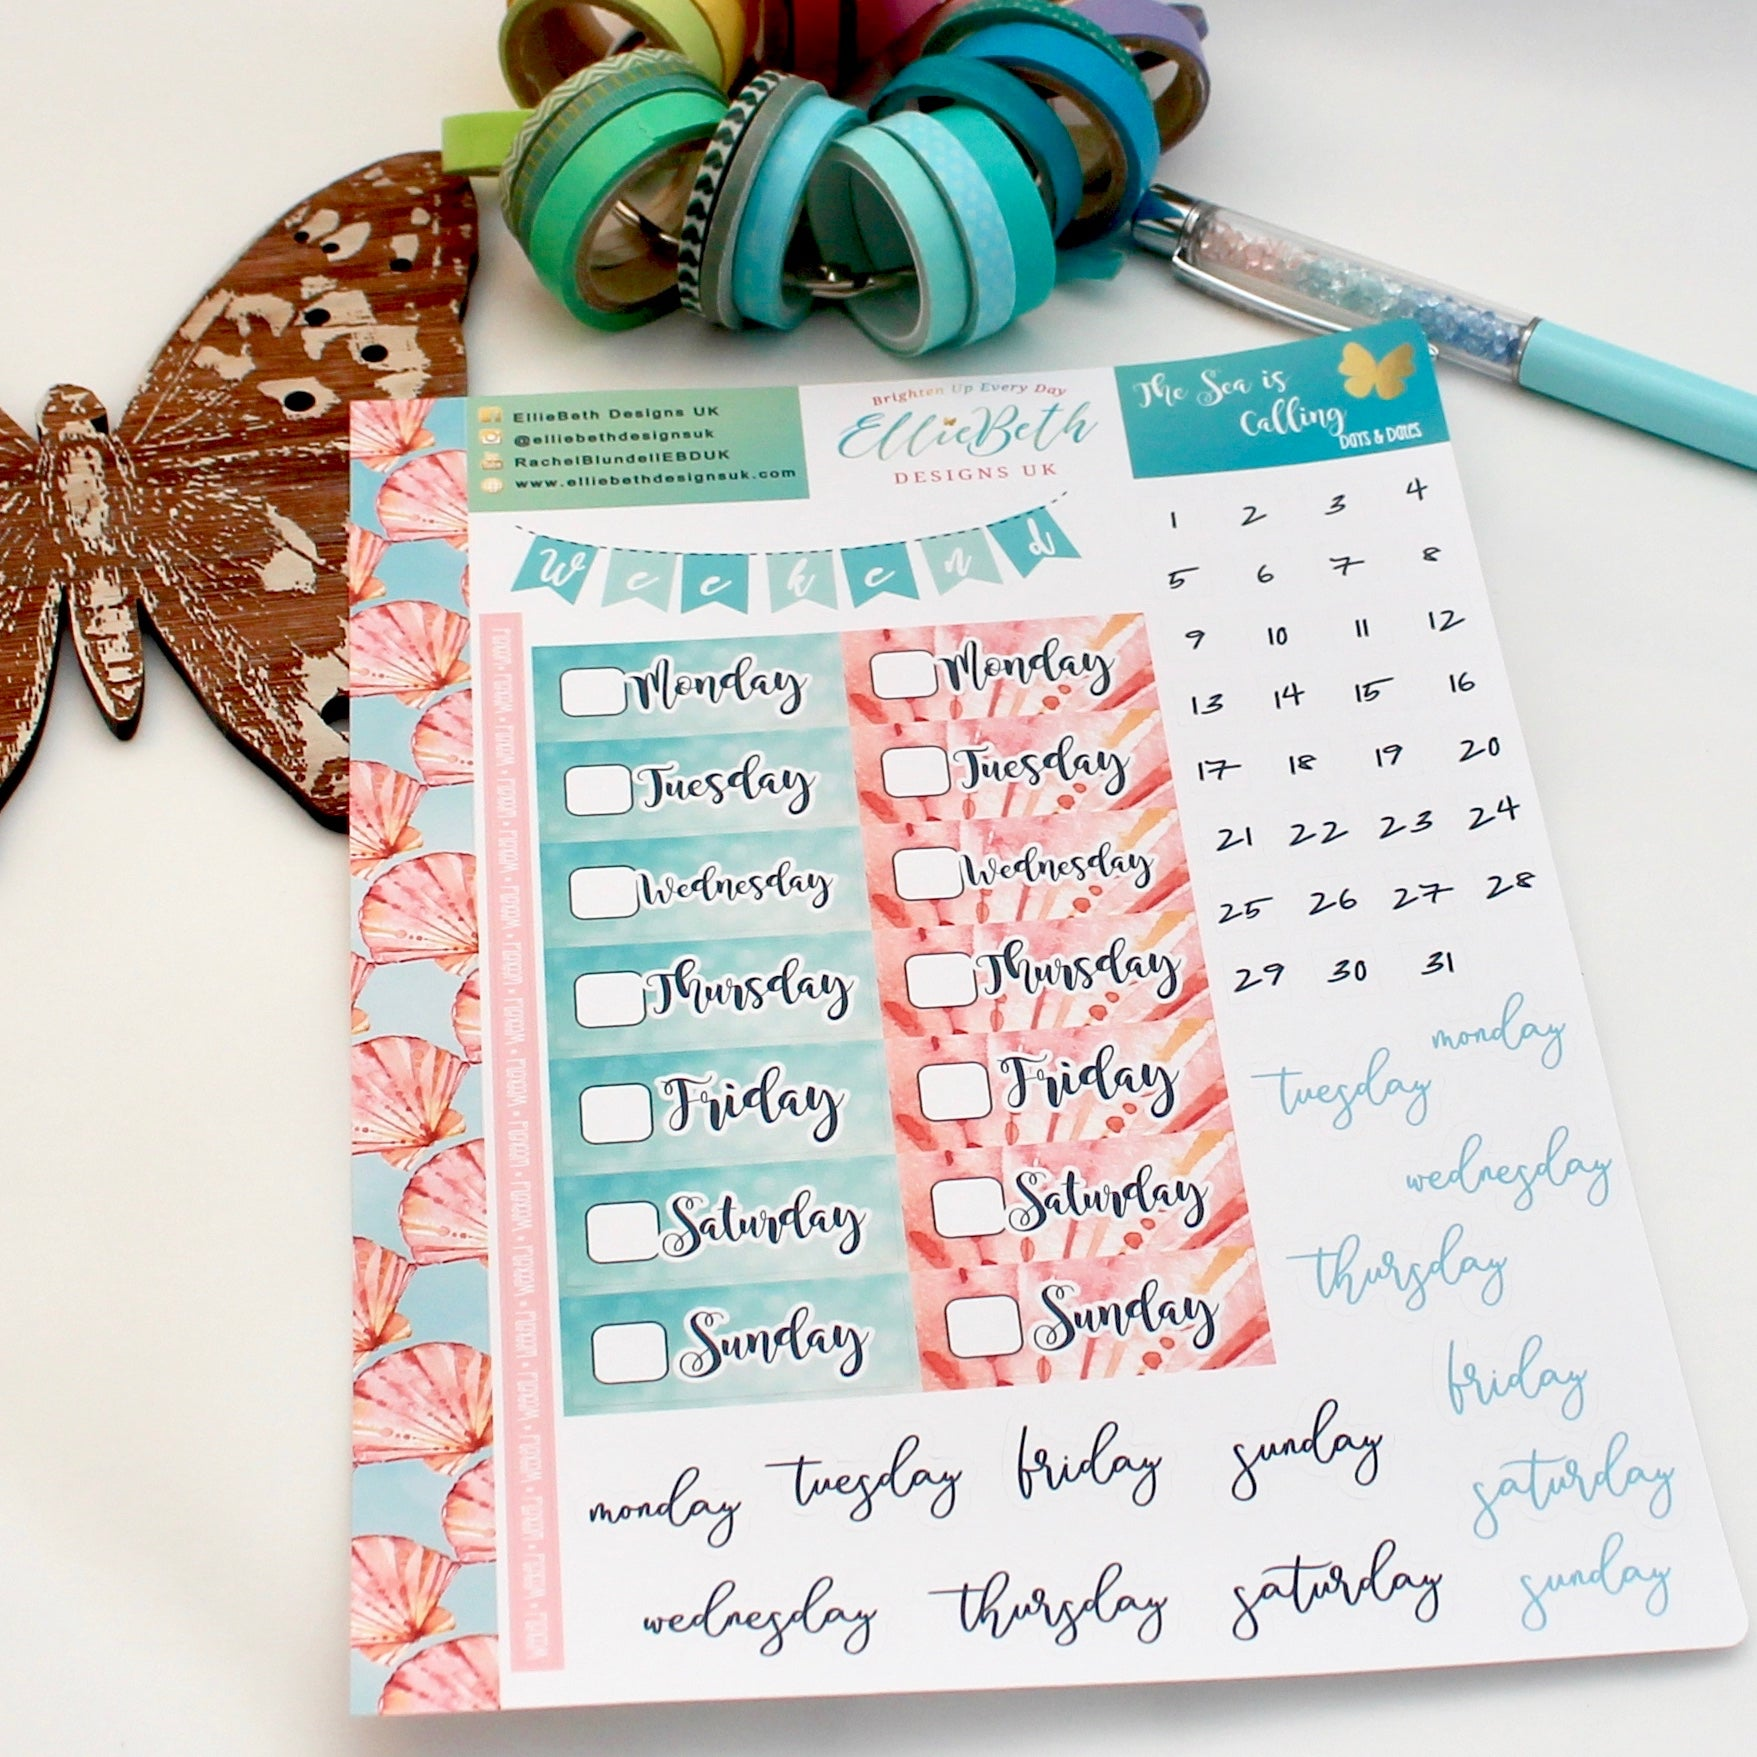 'The Sea is Calling' - Days and Dates - A5 binder ready planner stickers